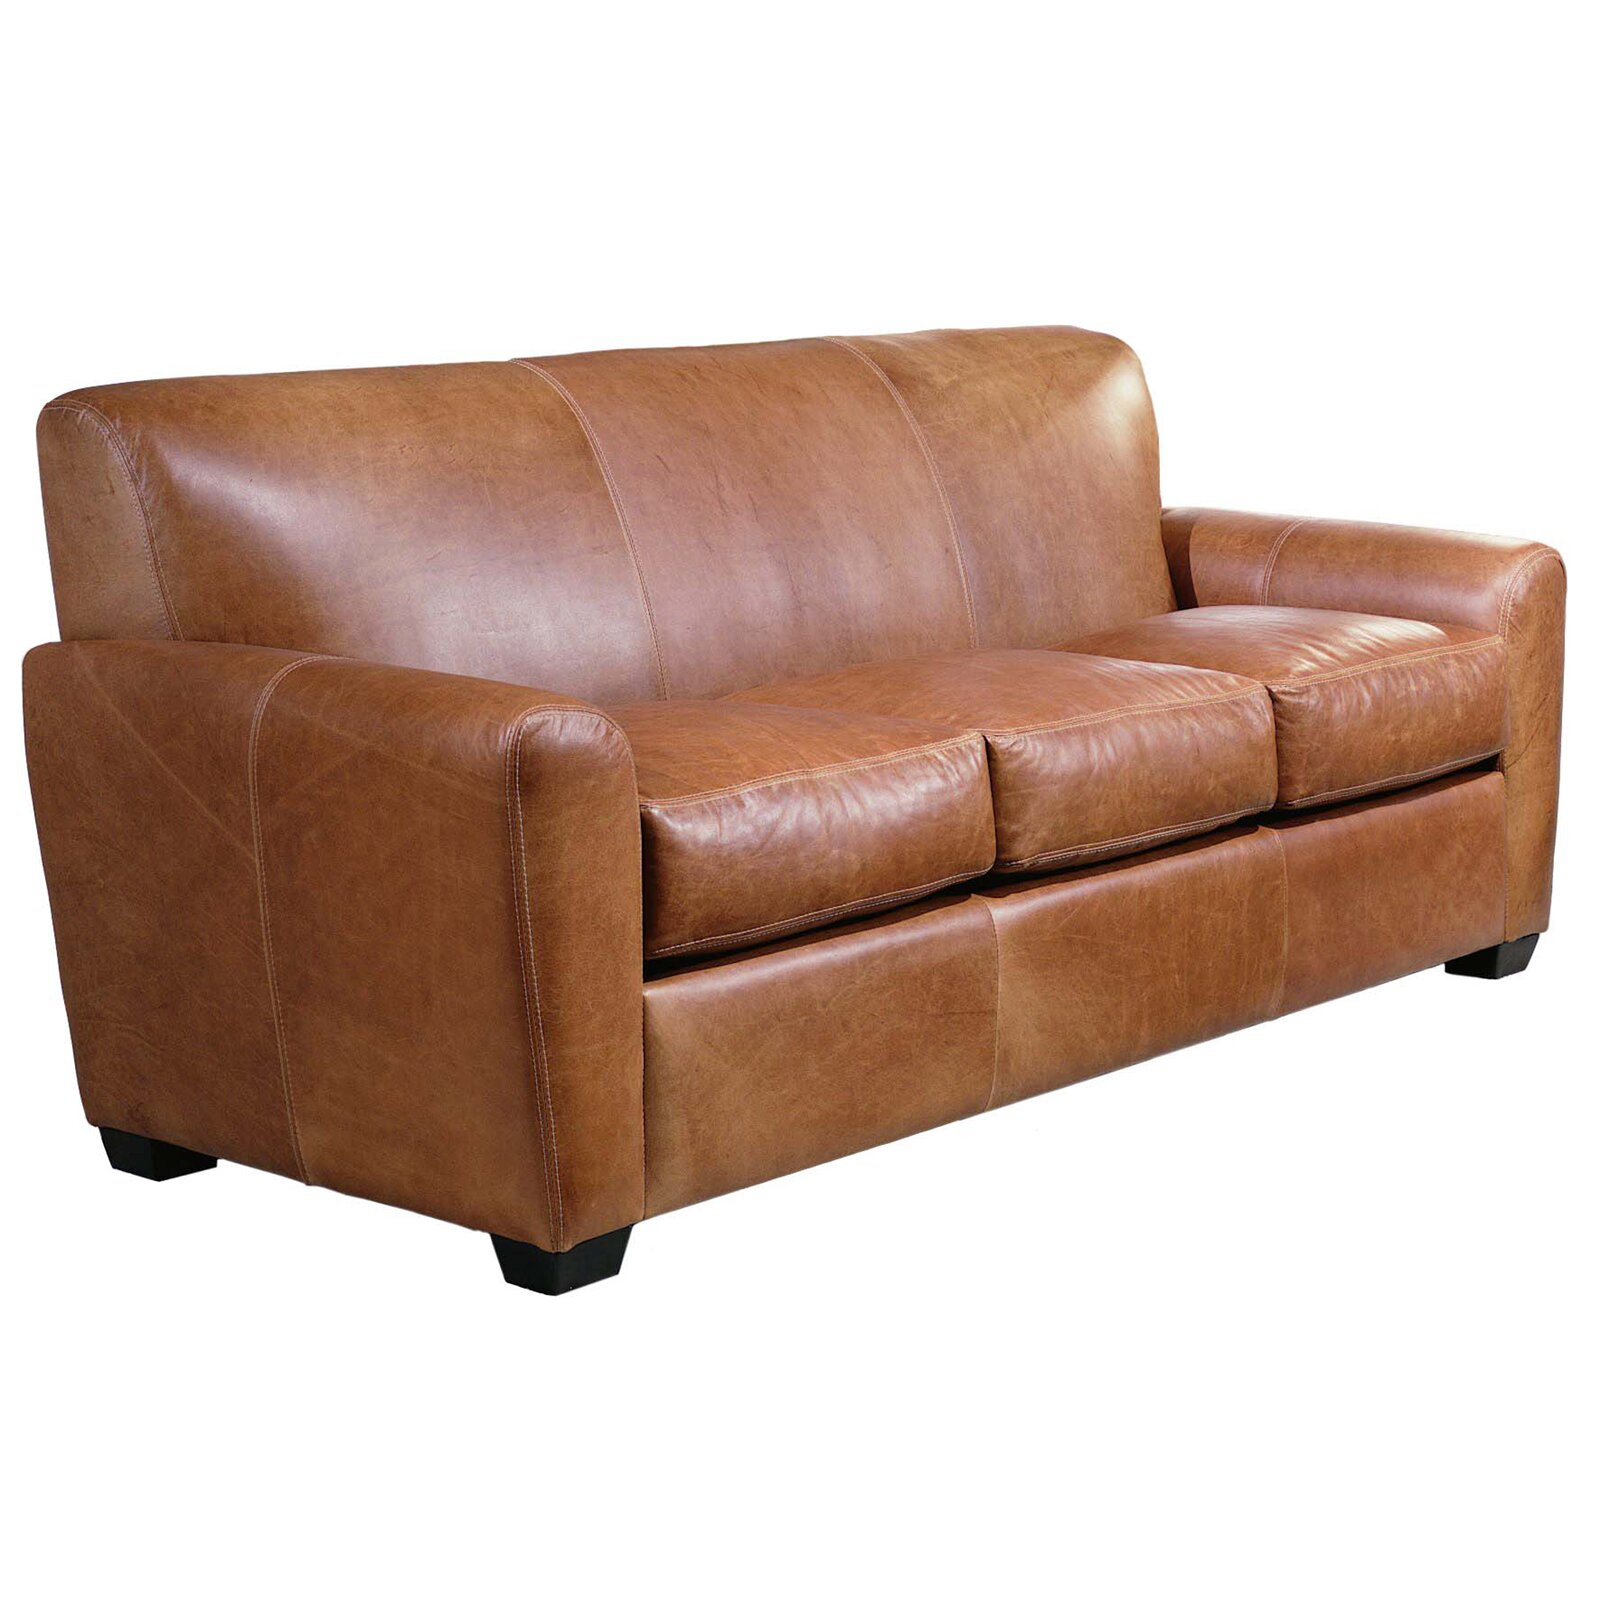 New] 28 sleeper sofa leather